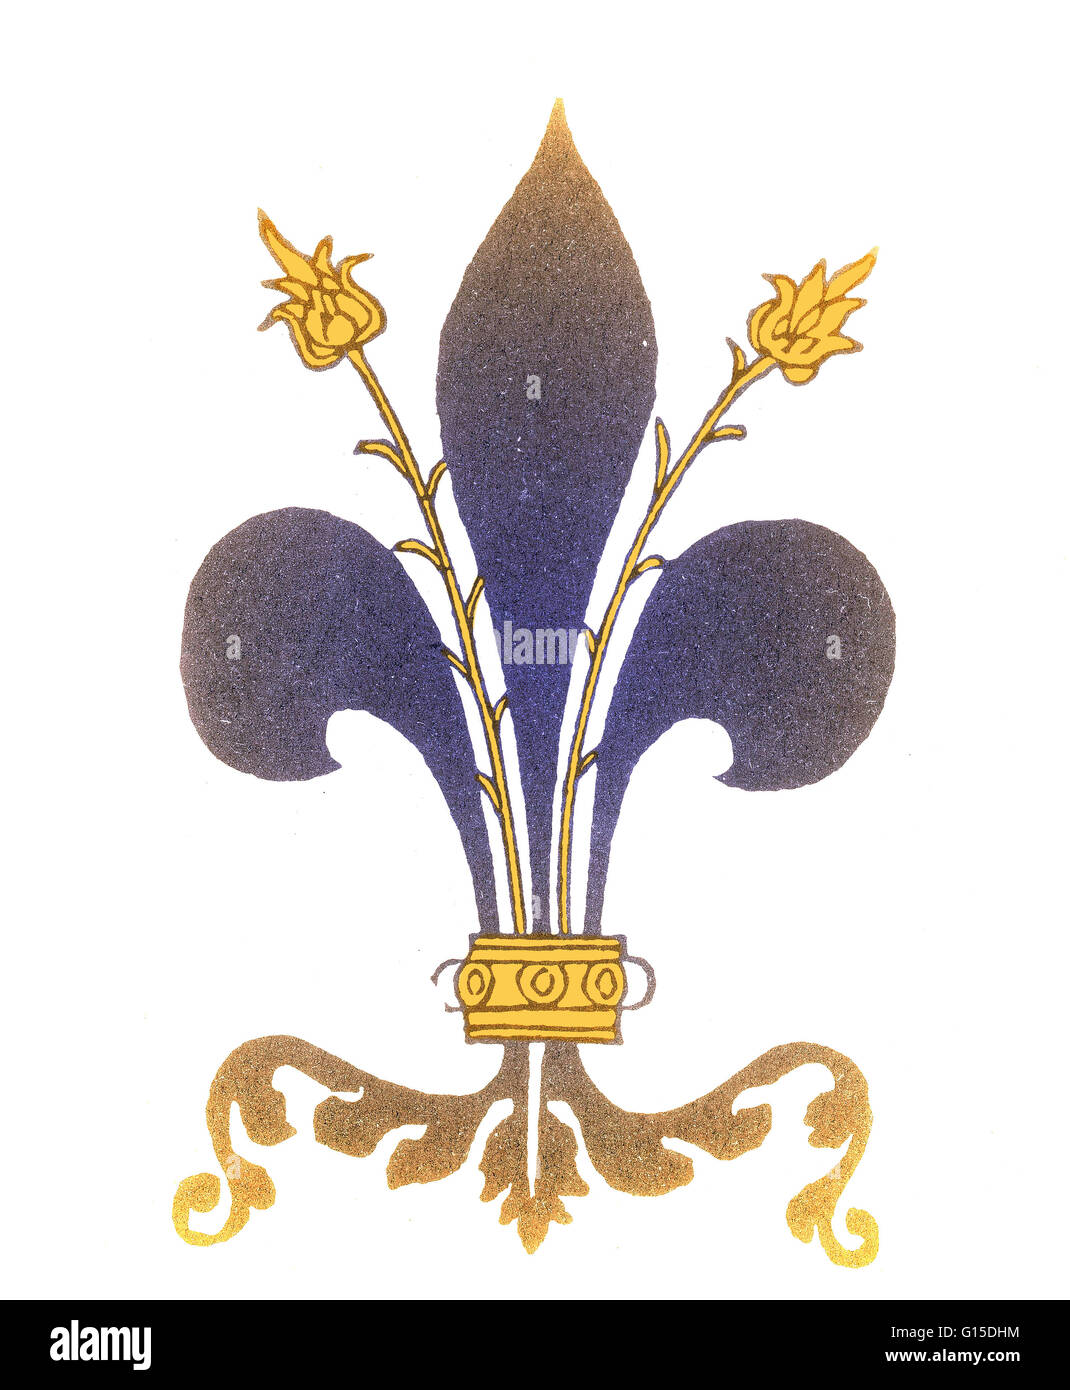 Fleur-de-Lis, Emblem of France, from a 15th century Engraving. - Stock Image